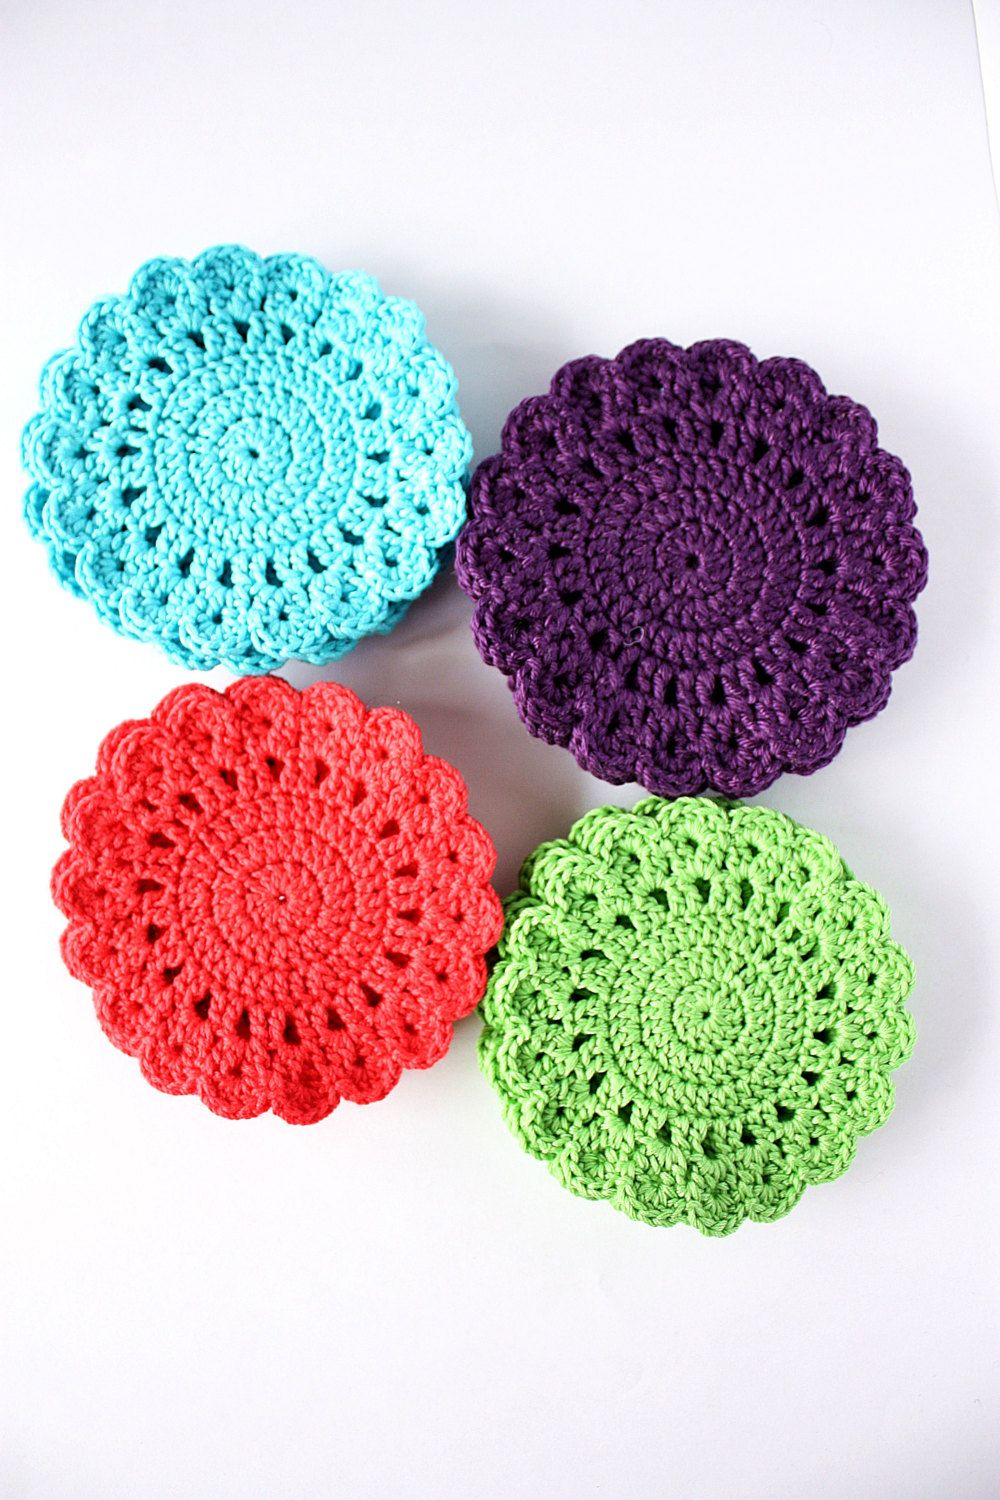 Crochet Coasters / Rags - Turquoise